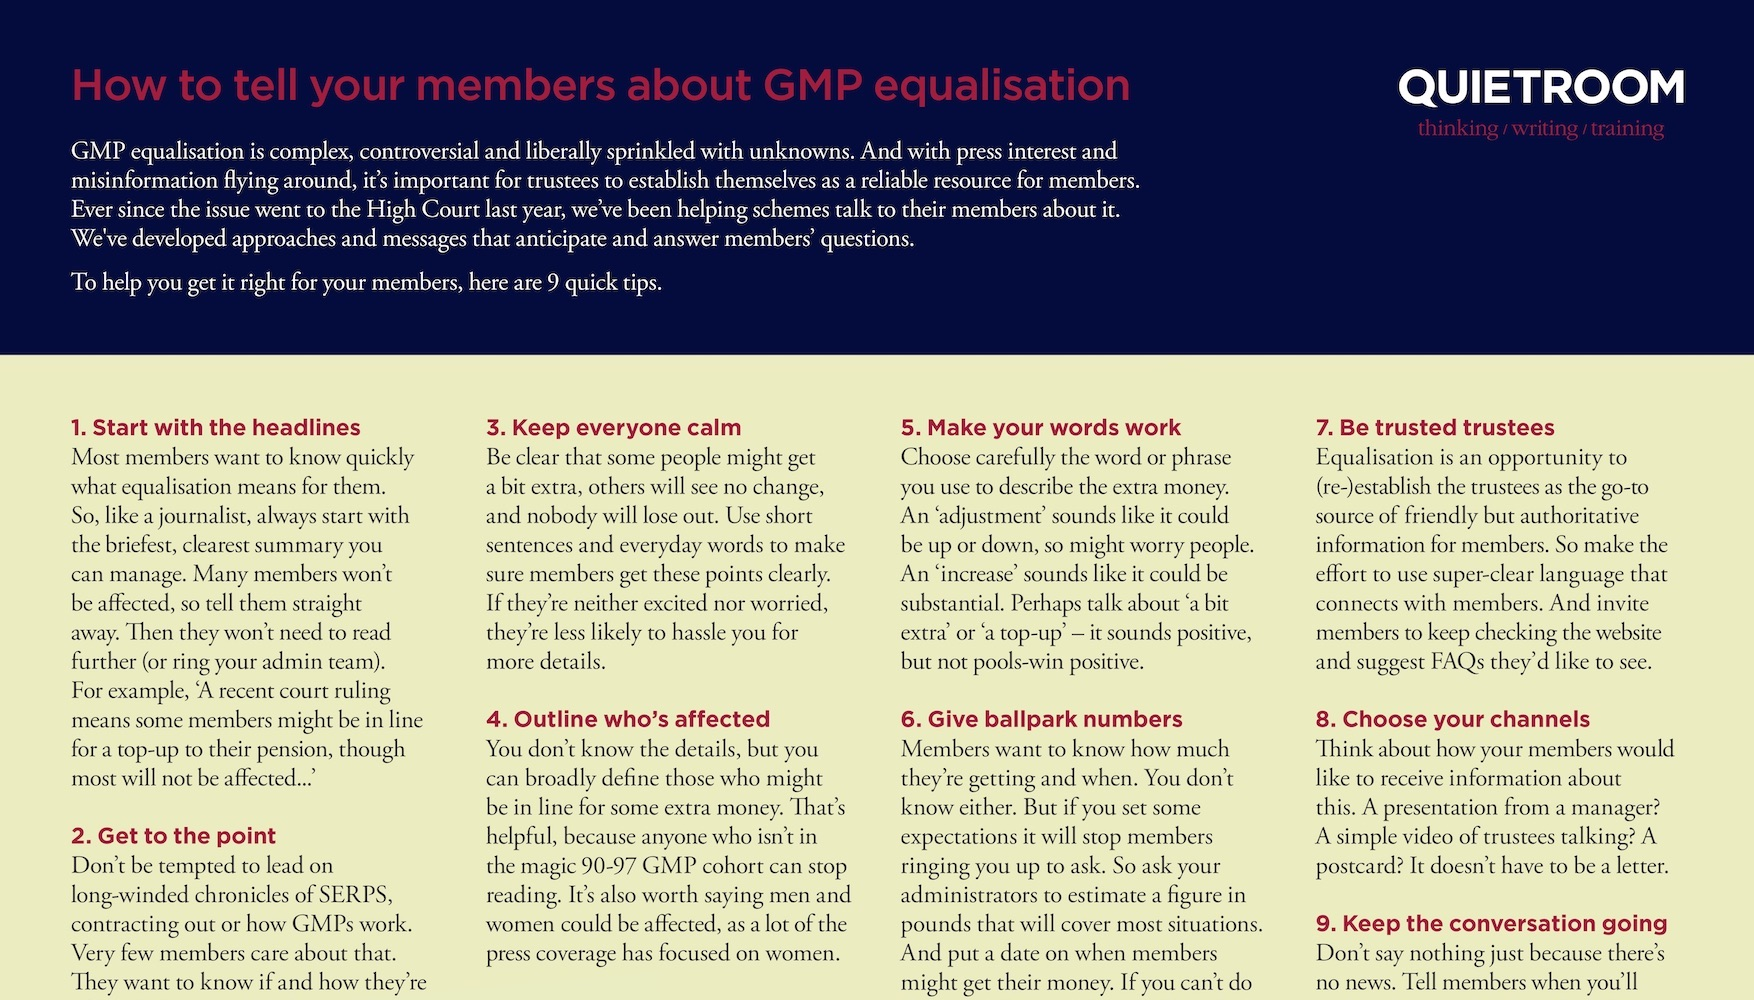 e42e66f84d Tips for talking to members about GMP equalisation